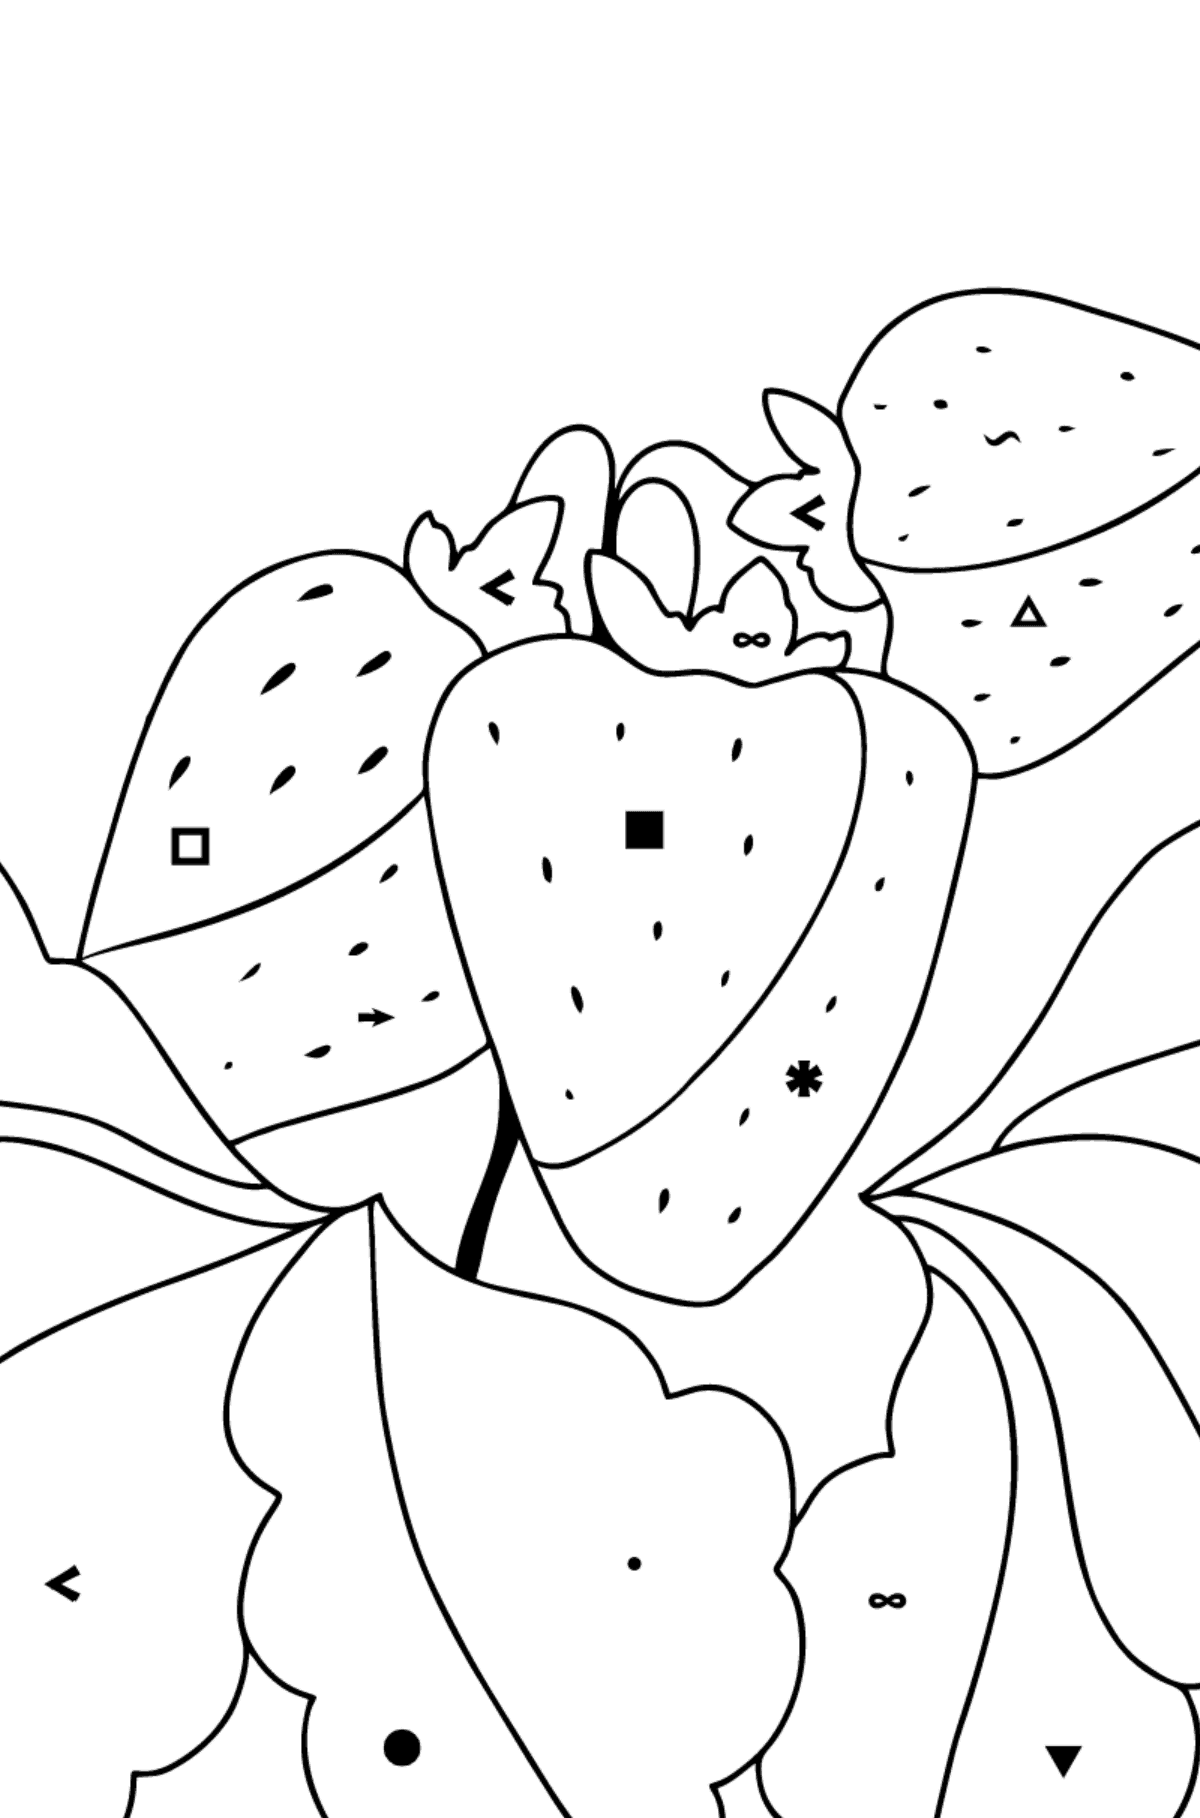 Summer Coloring Page - Strawberries are Ready on the Garden Bed - Coloring by Symbols for Kids